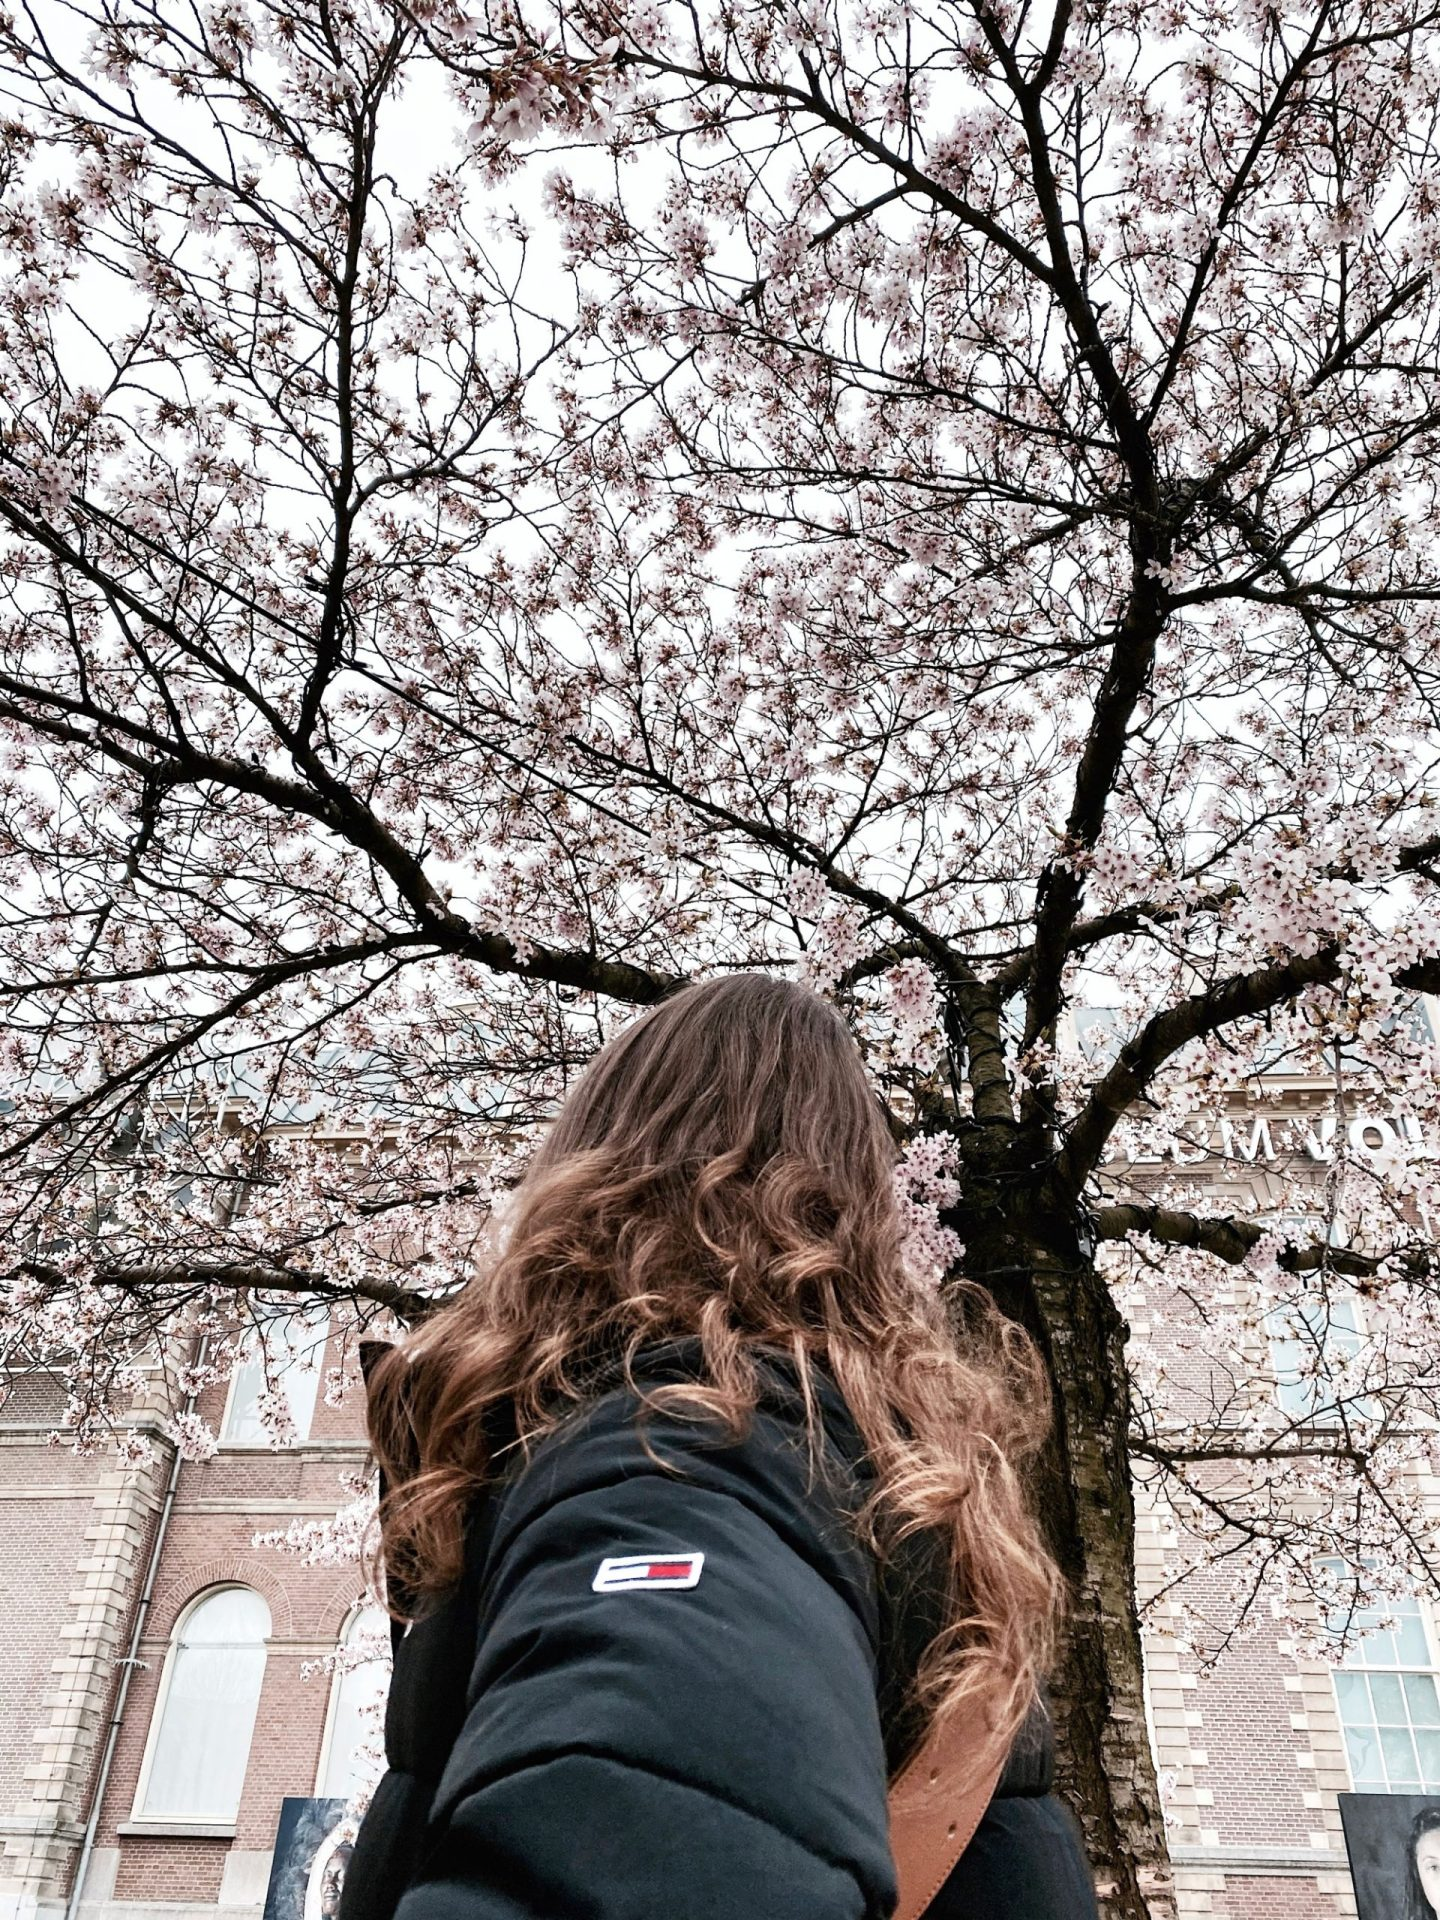 Pink Season Has Come And Gone | Inspiration: Cherry Blossom Season